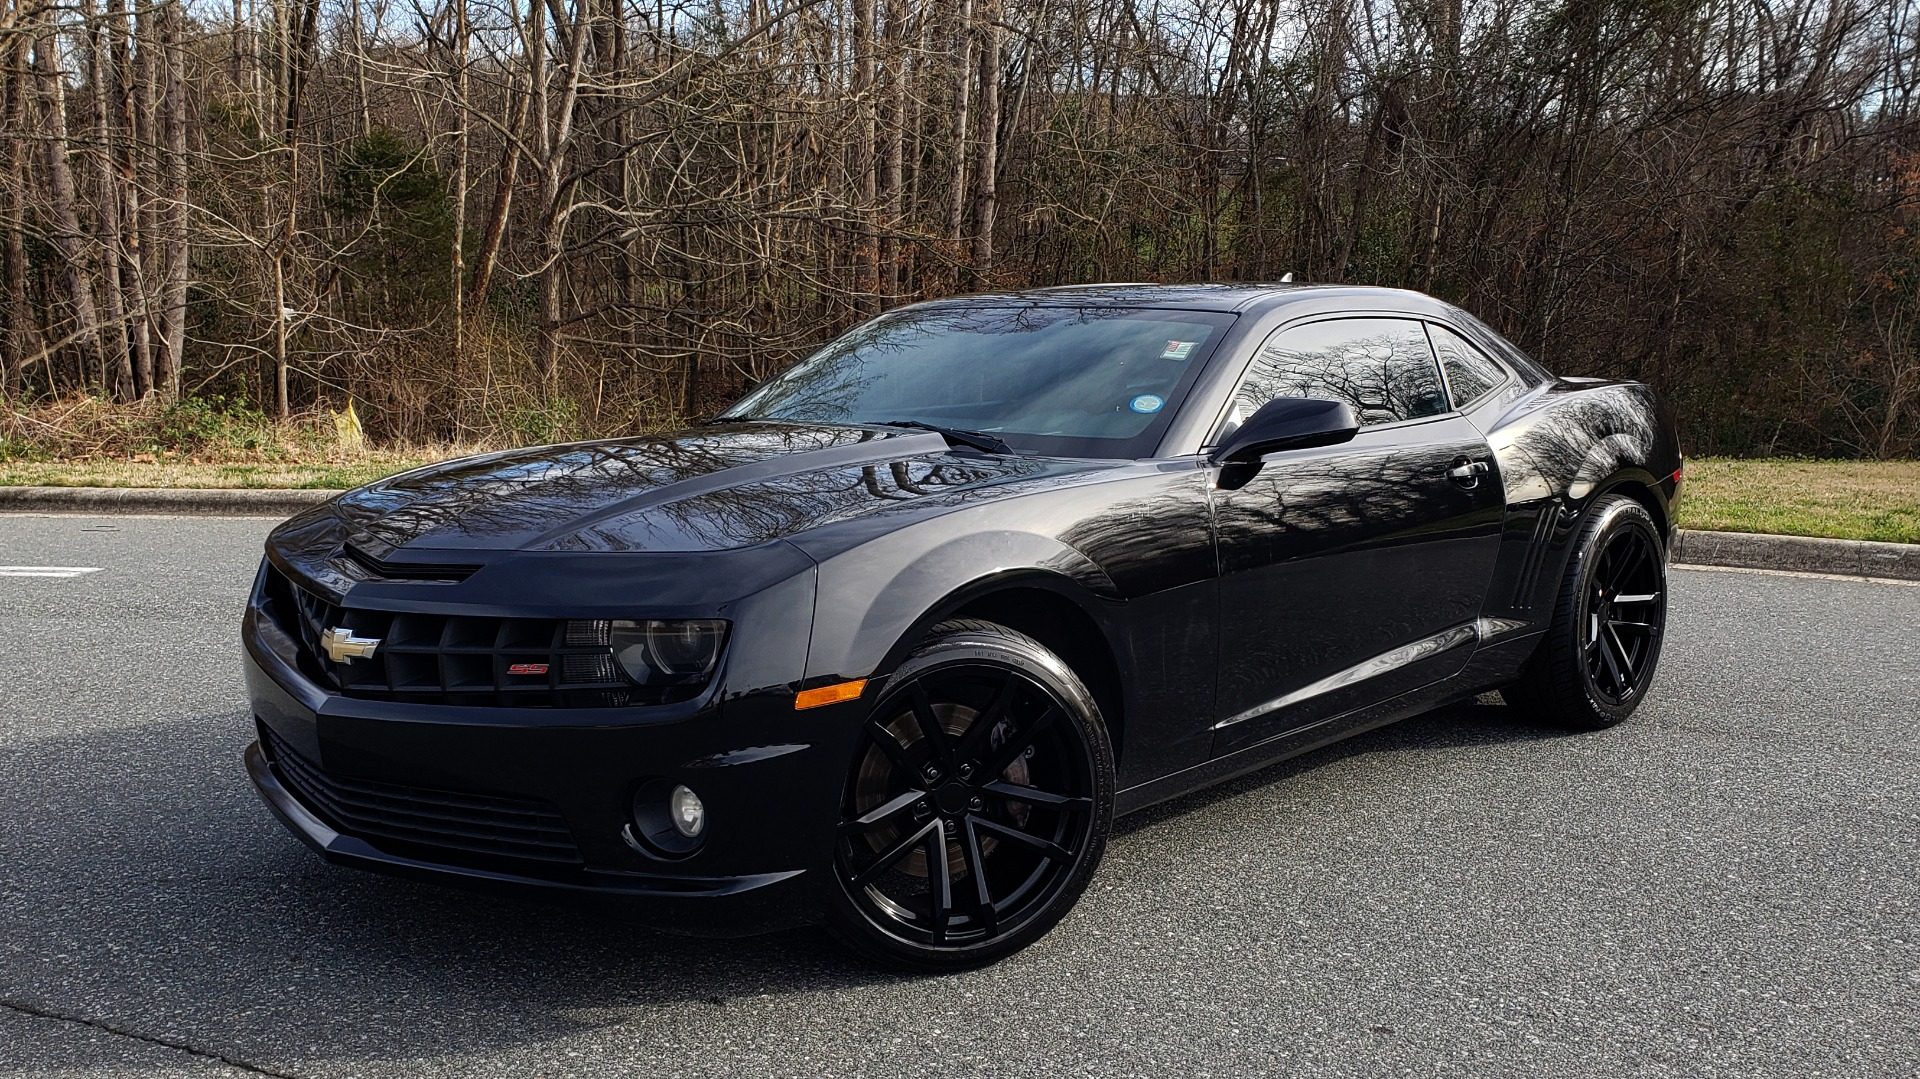 Used 2011 Chevrolet Camaro 2SS / 6.2L V8 / 6-SPEED MANUAL / HEADERS / INTAKE for sale Sold at Formula Imports in Charlotte NC 28227 1